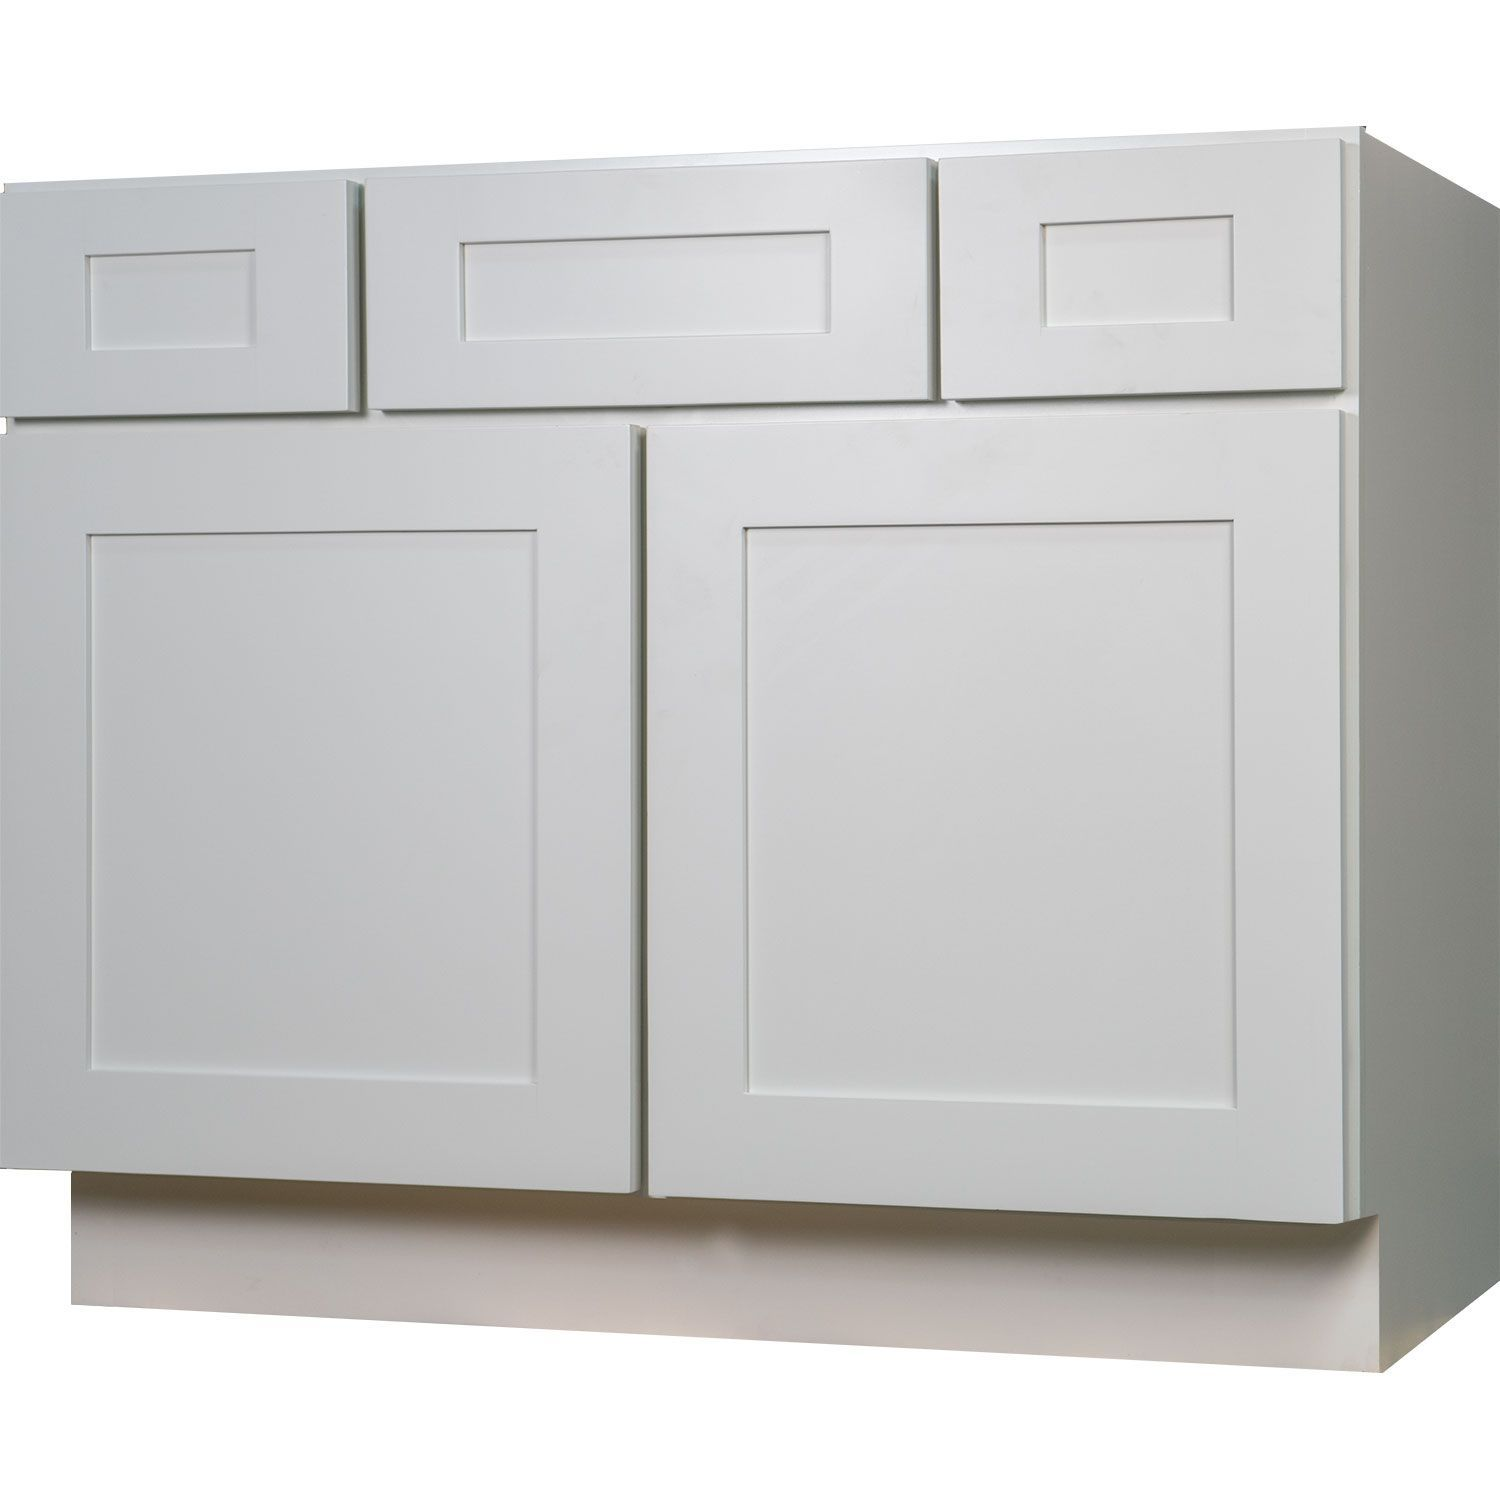 42 Inch Bathroom Vanity Single Sink Cabinet In Shaker White With Soft Close  Drawers